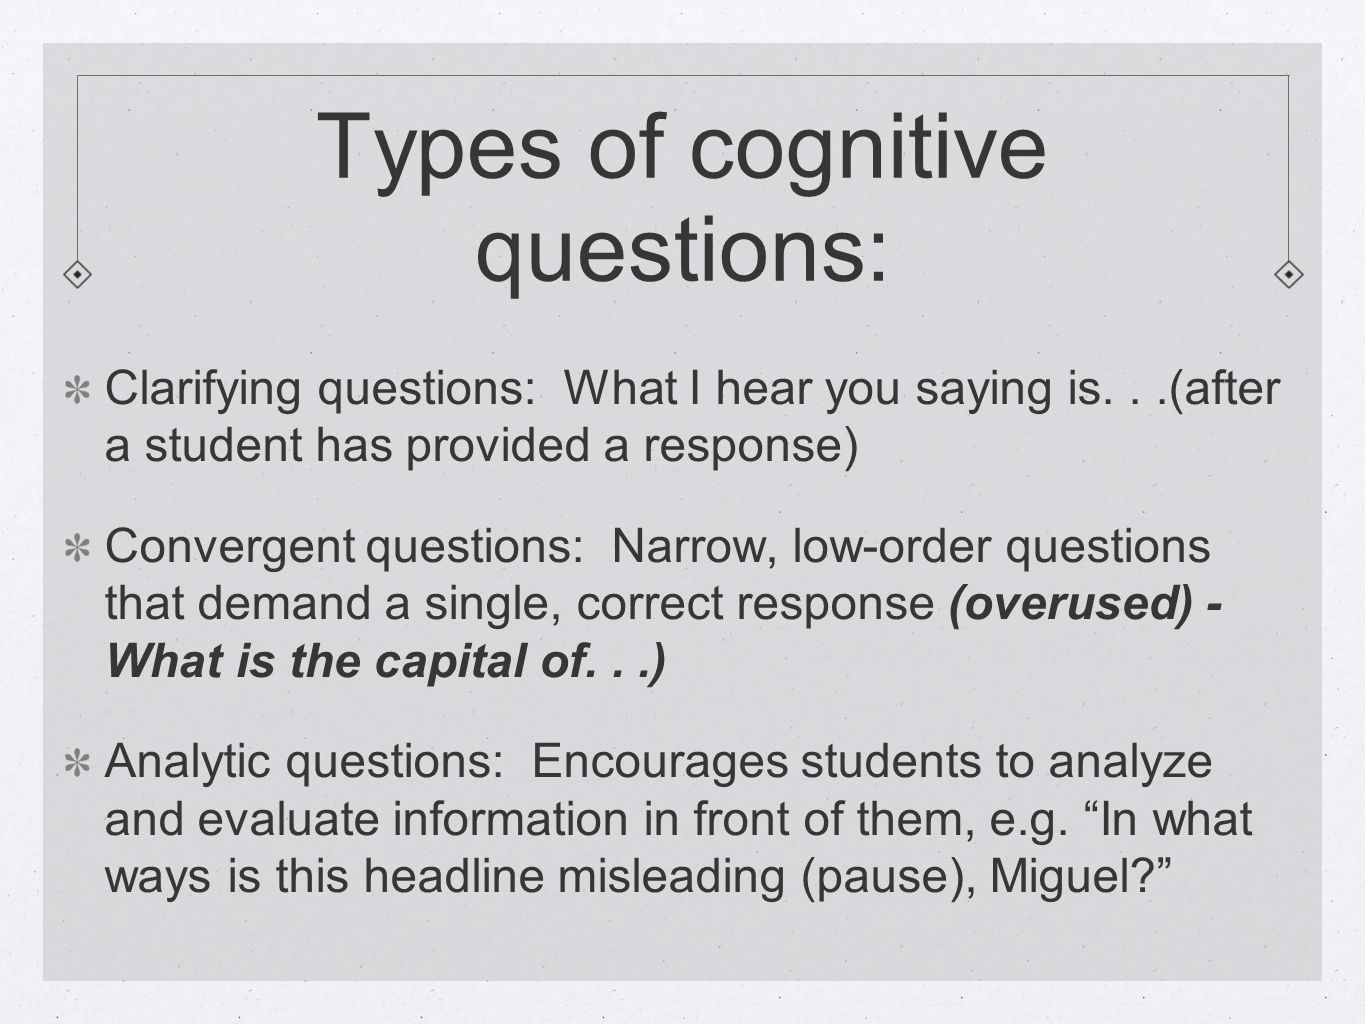 Types of cognitive questions: Clarifying questions: What I hear you saying is...(after a student has provided a response) Convergent questions: Narrow